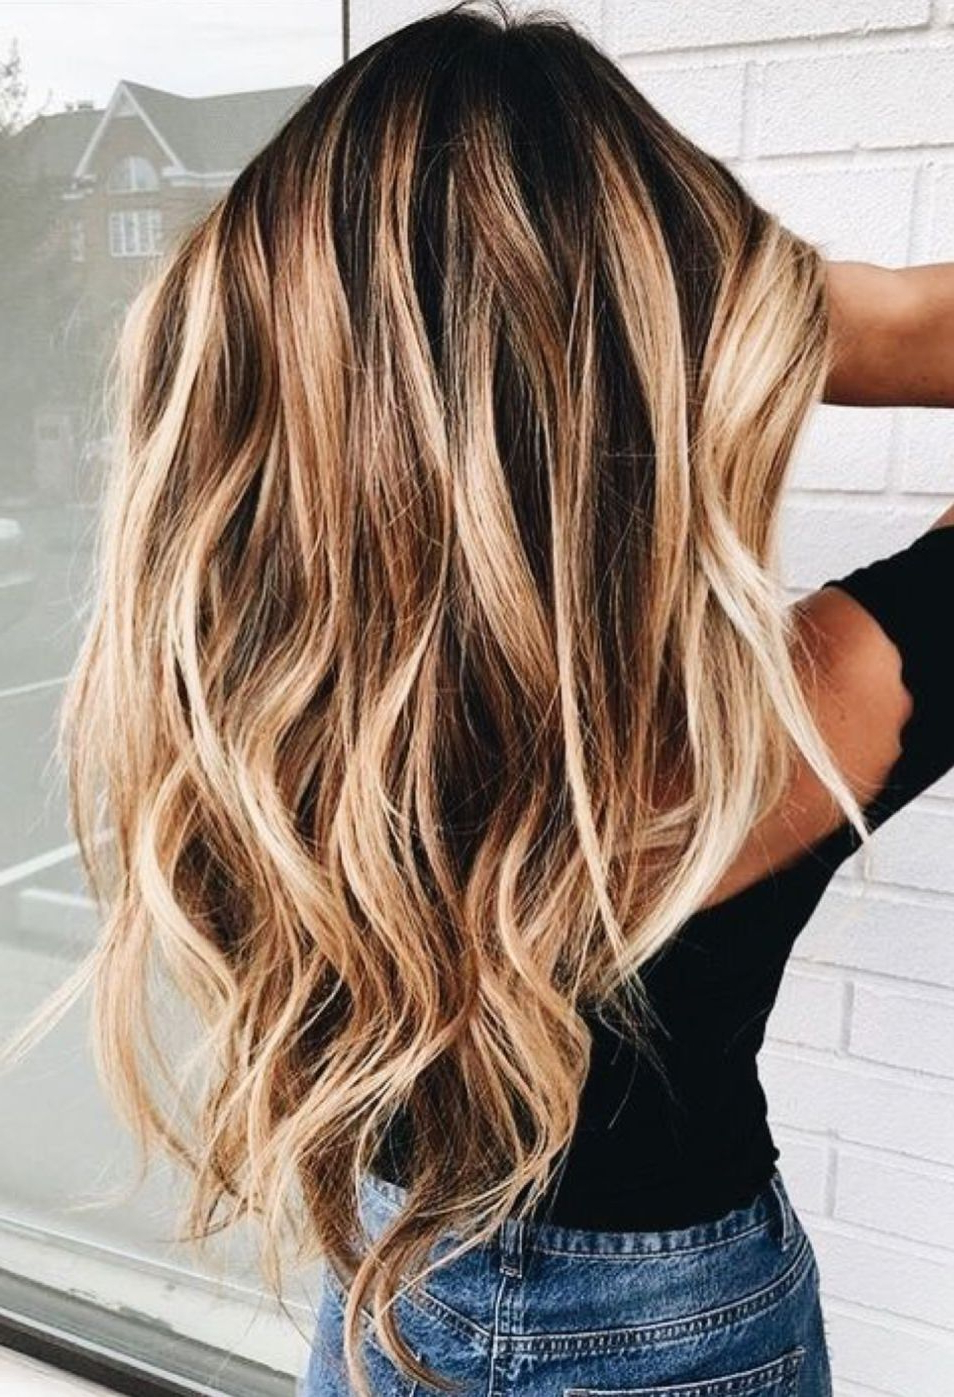 Pinangelic Fokkens On Hair | Pinterest | Hair Style, Hair Pertaining To Angelic Blonde Balayage Bob Hairstyles With Curls (View 9 of 25)